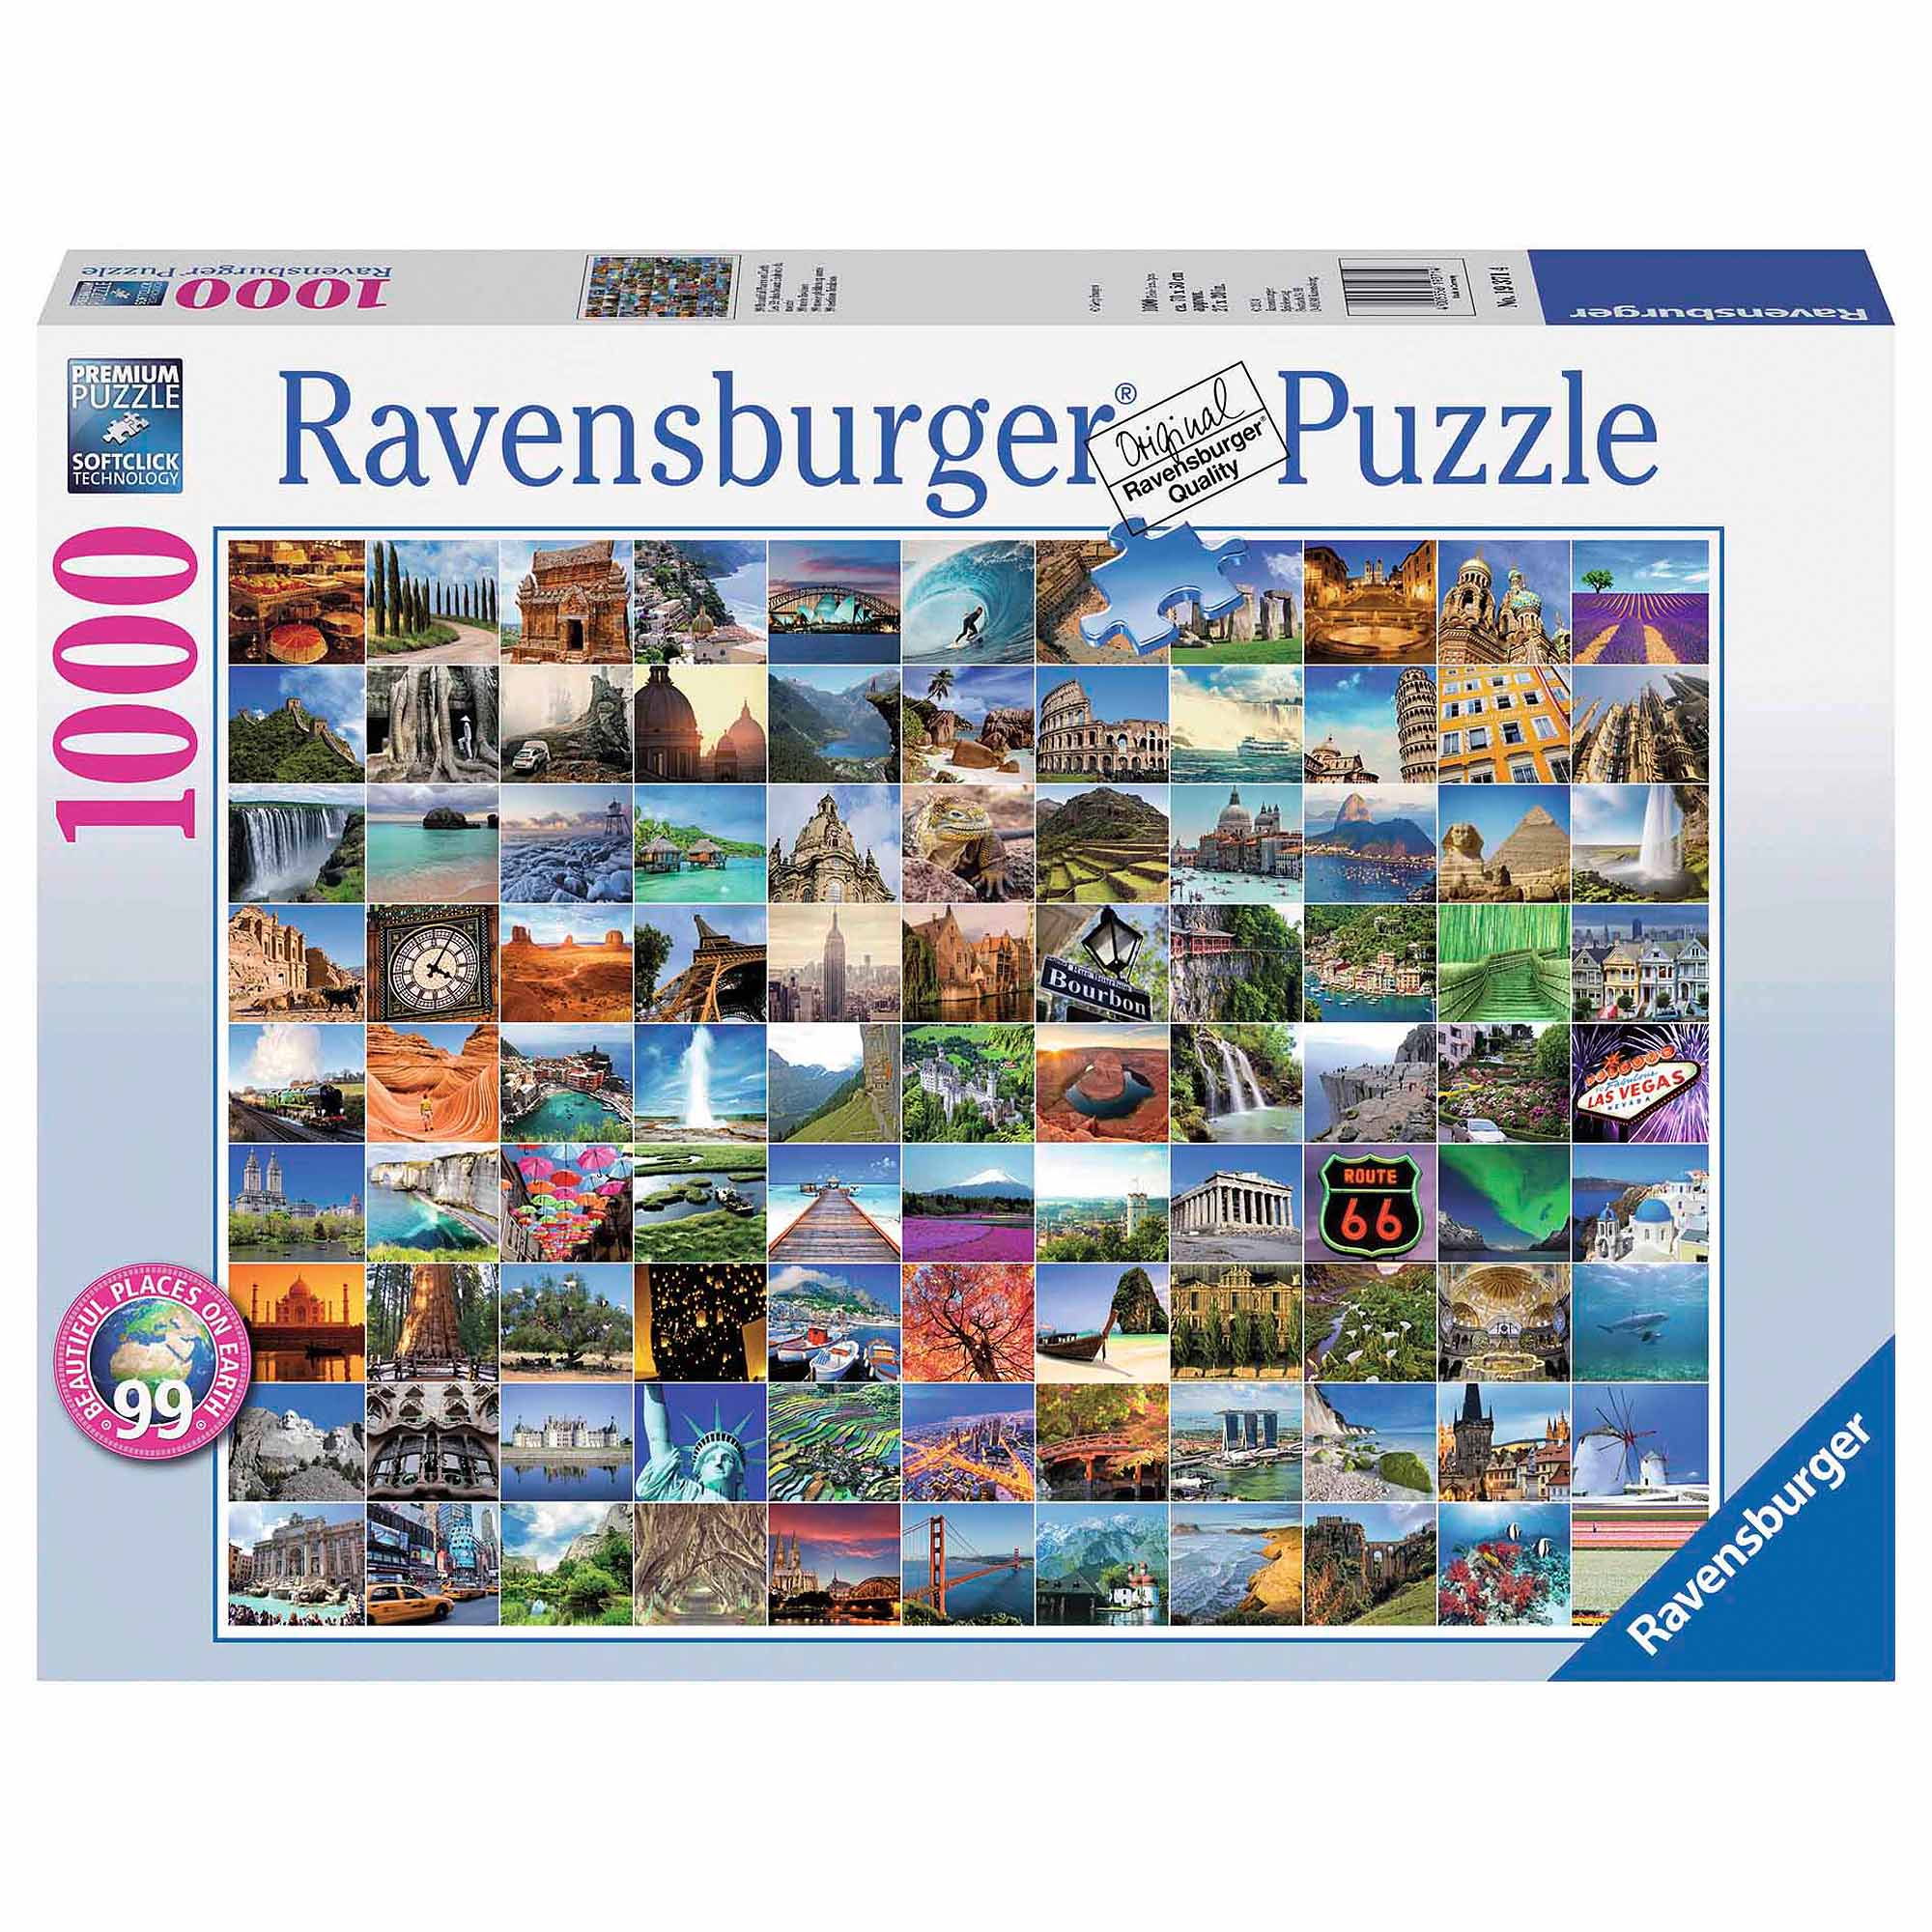 99 Beautiful Places on Earth Puzzle, 1,000 Pieces